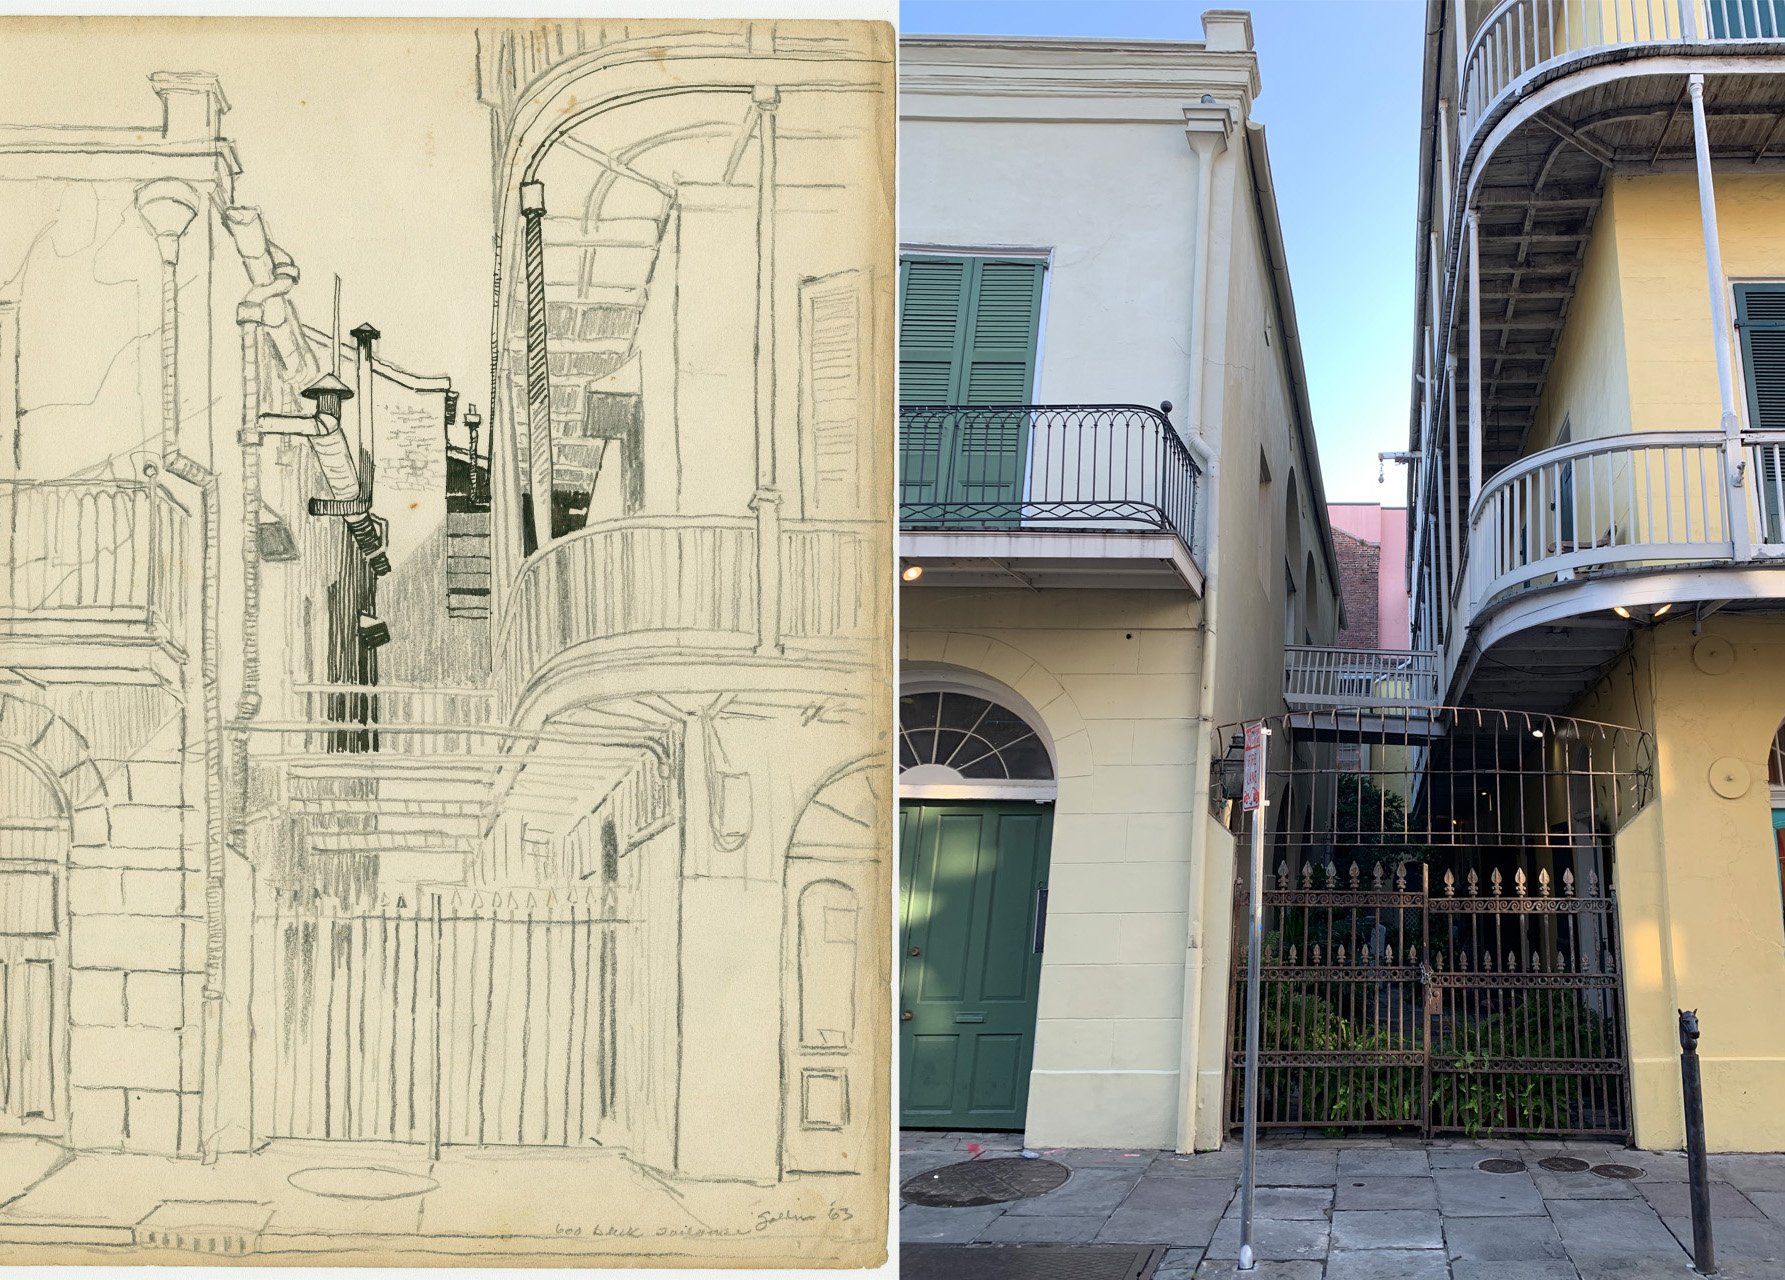 A sketch of properties on the 600 block of Toulouse Street, alongside a modern-day photograph